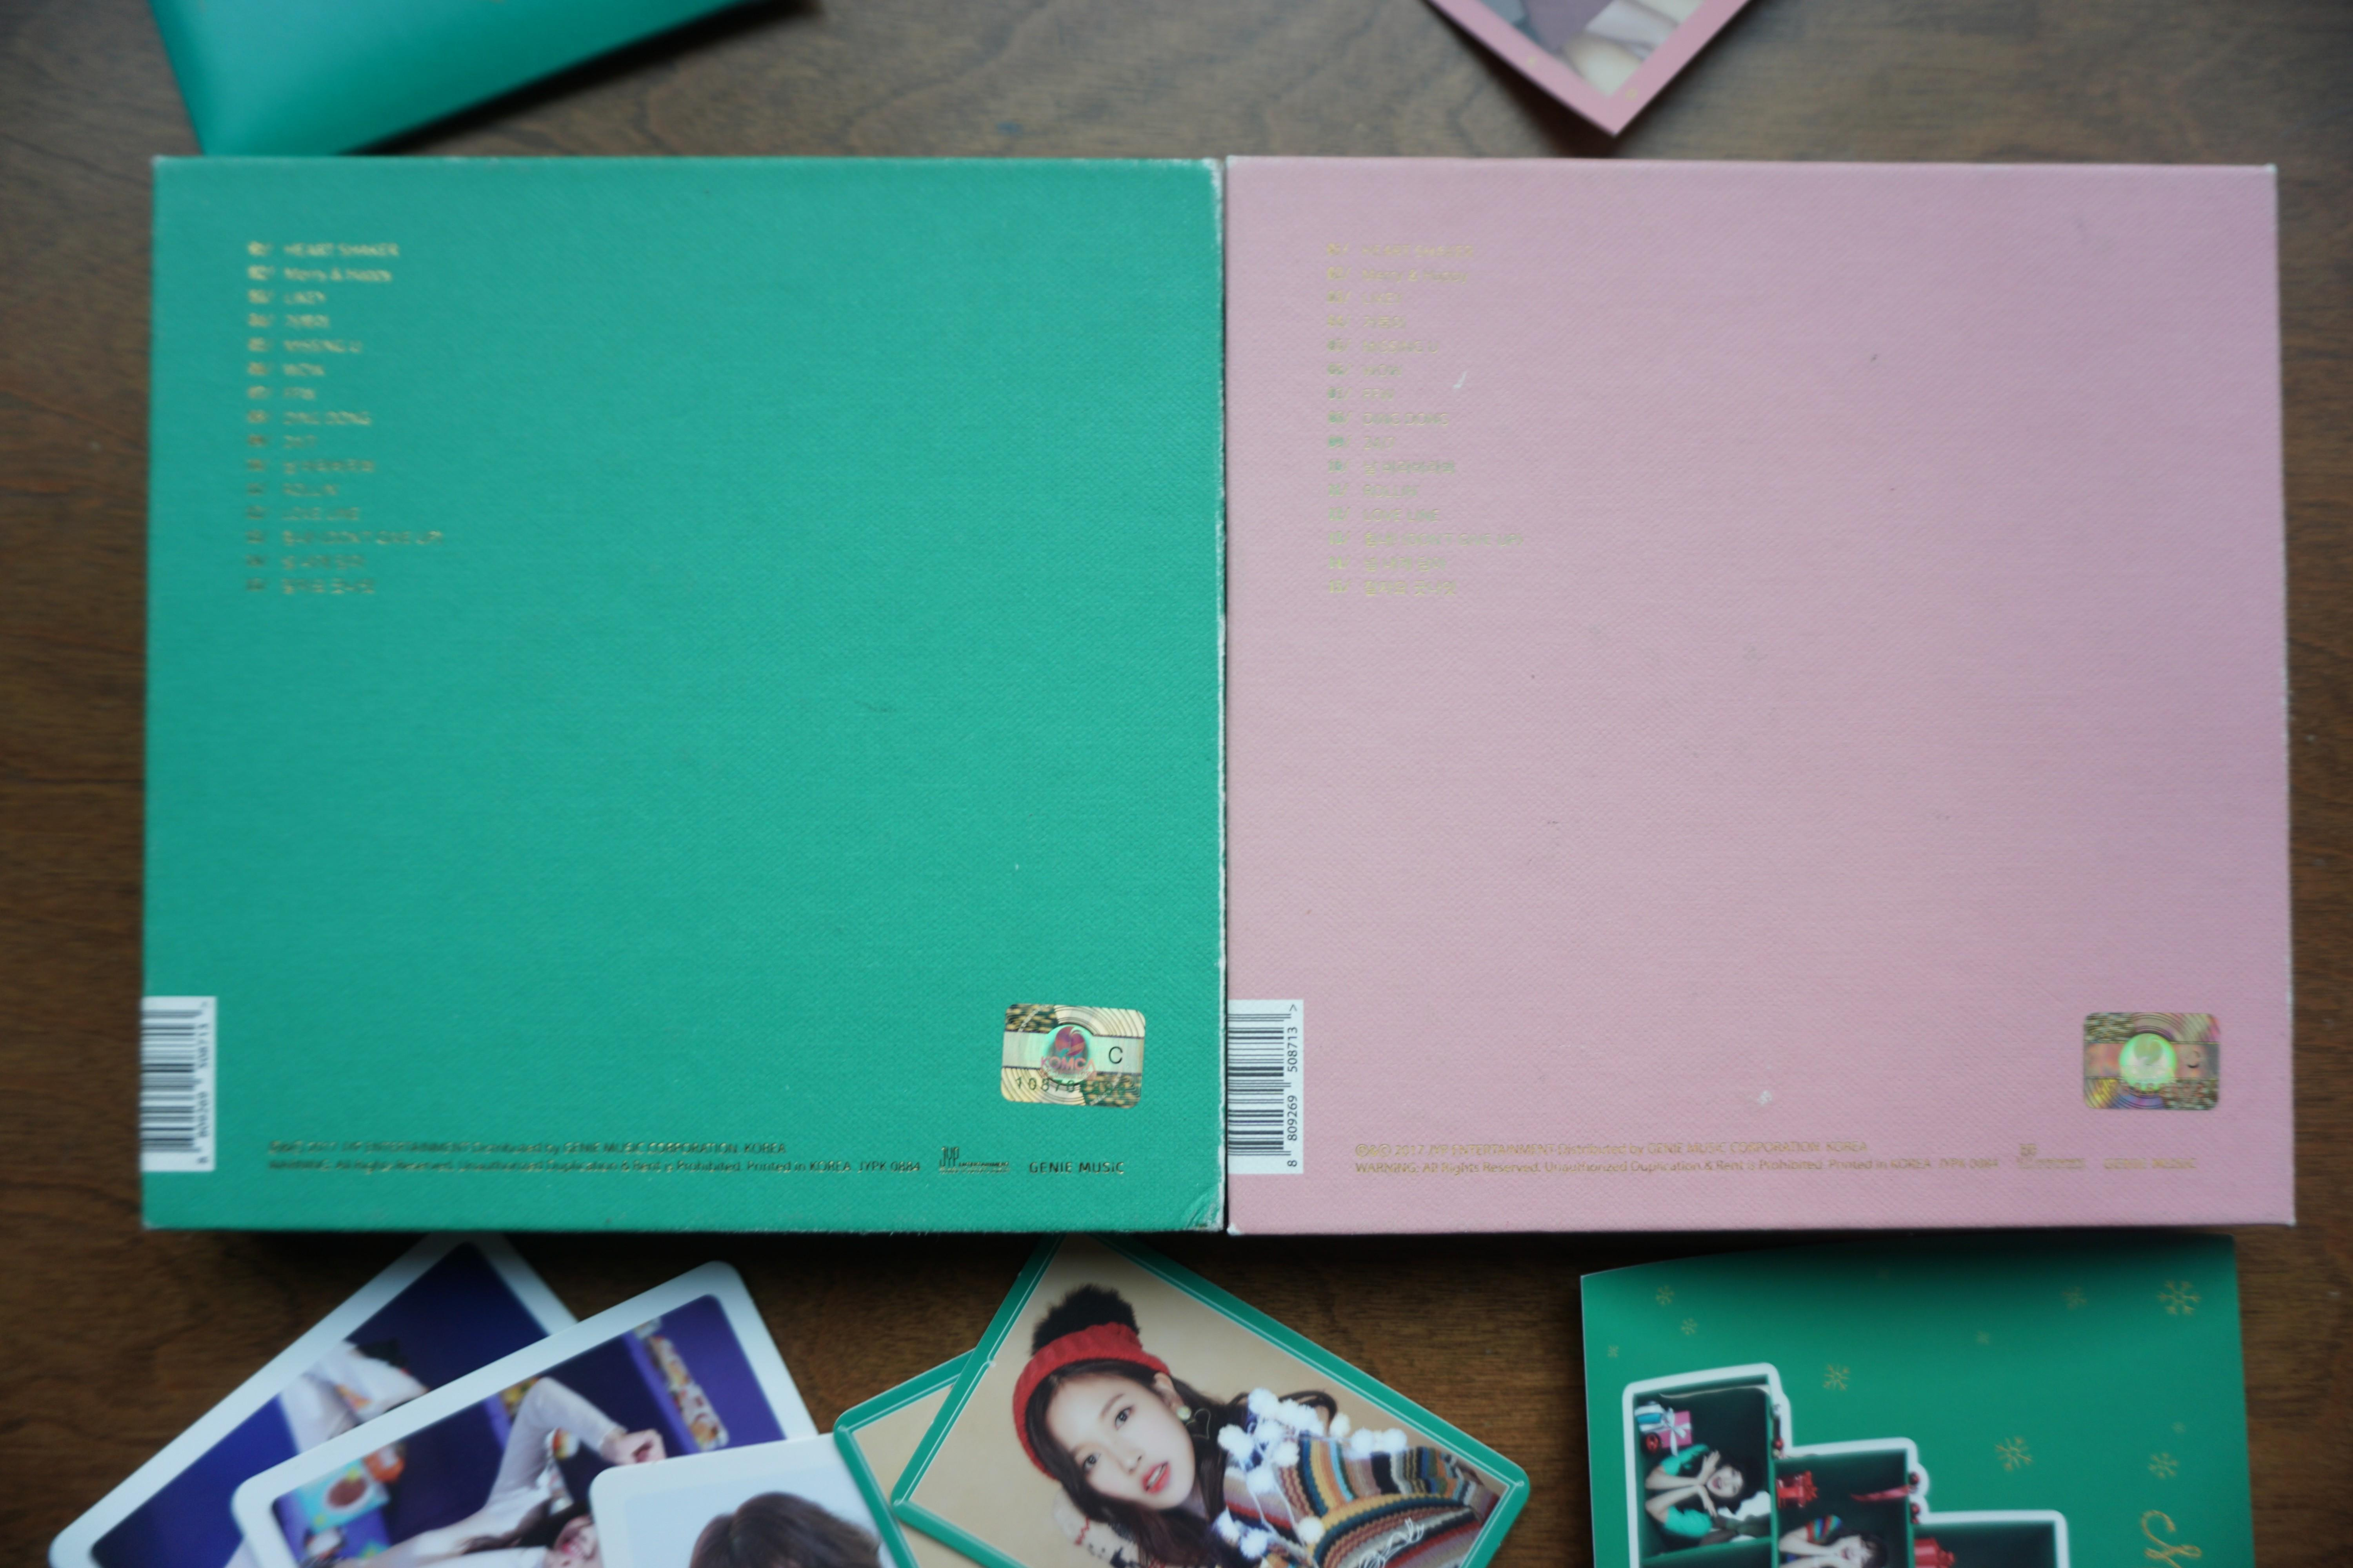 [Special]Twice - Merry and Happy Albums Twicetagram Repackage